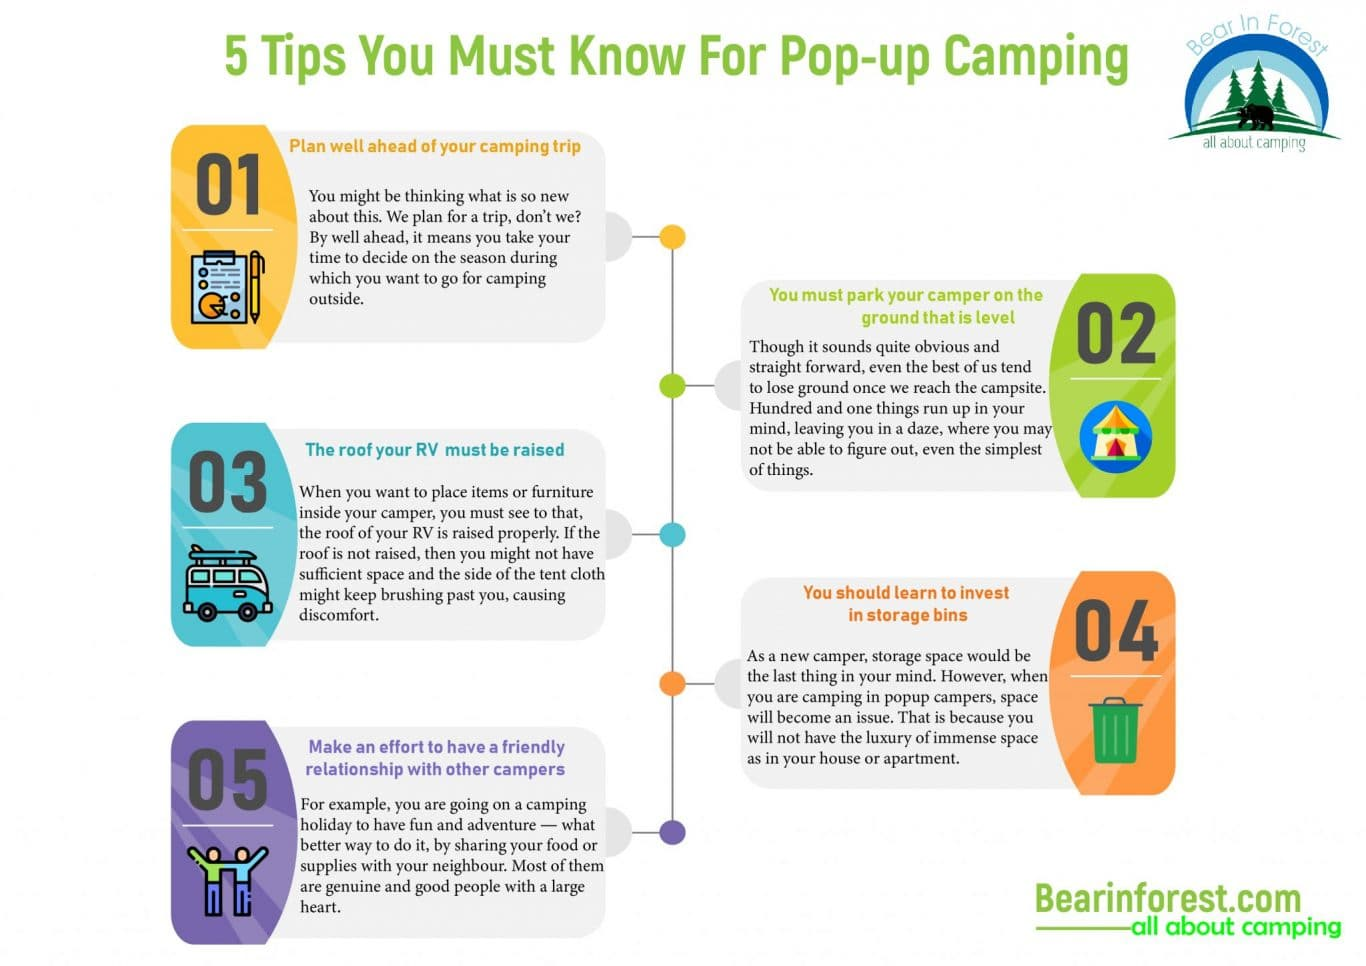 5tips-must-know-pop-up-camping-inforgraphic